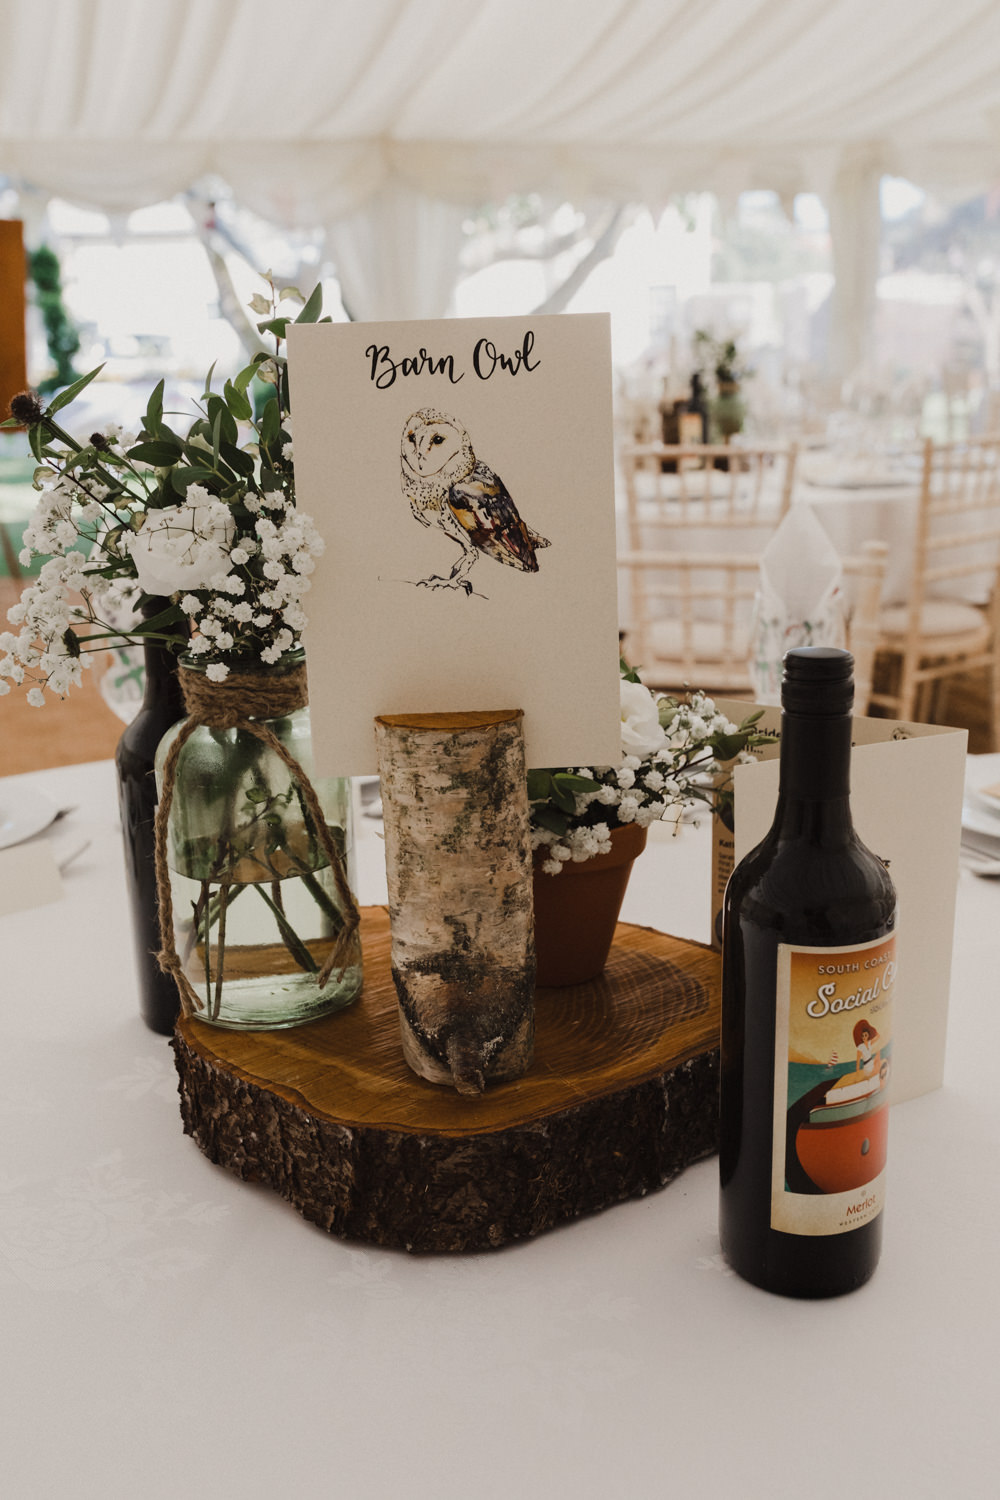 Table Centrepiece Log Slice Jar Flowers Animal Nature Table Names Seaside Wedding Oli and Steph Photography